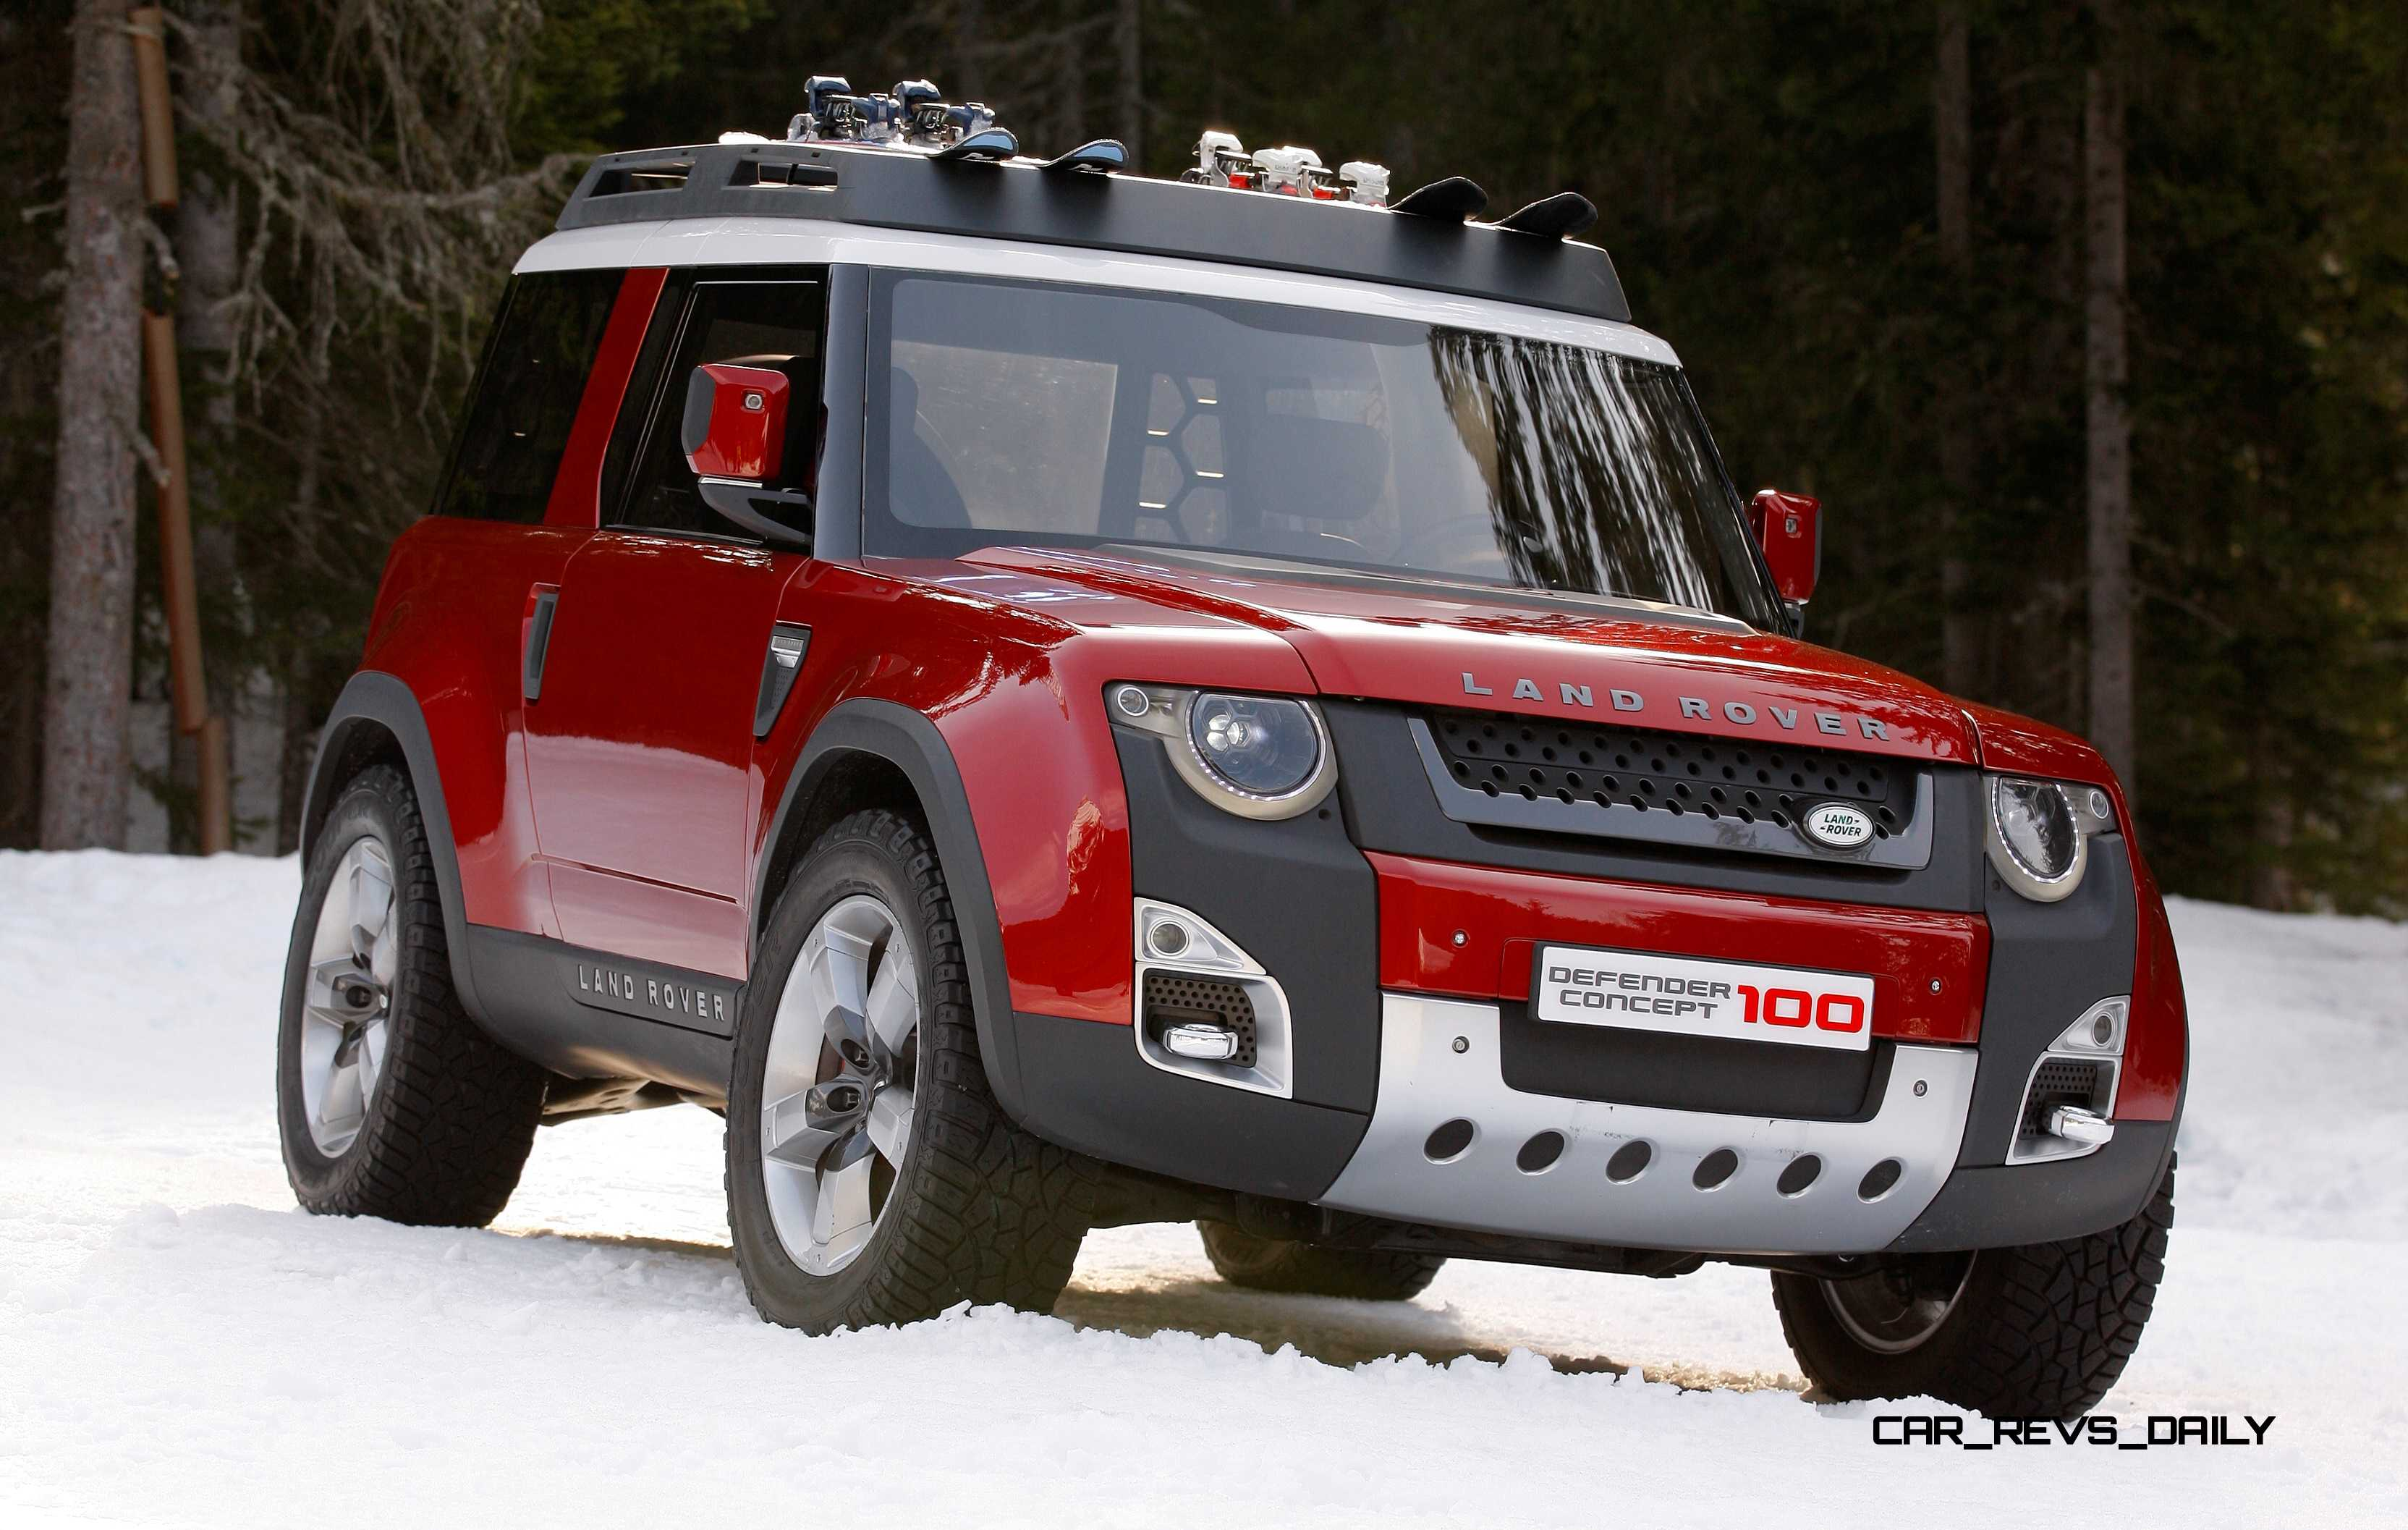 http://www.car-revs-daily.com/wp-content/uploads/2014/11/2011-Land-Rover-DC100-20.jpg